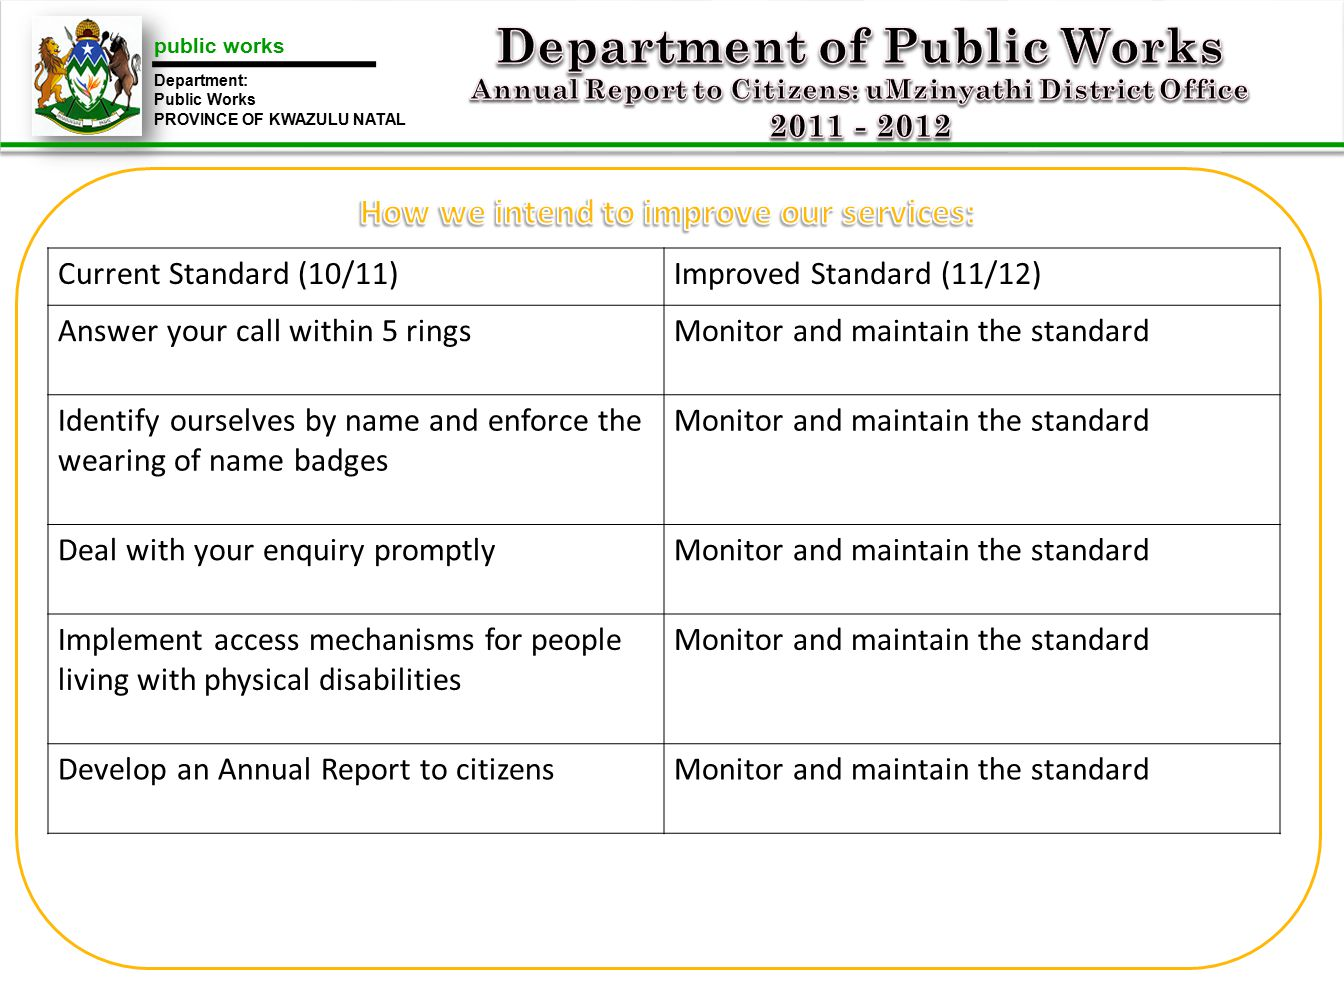 public works Department: Public Works PROVINCE OF KWAZULU NATAL Current Standard (10/11)Improved Standard (11/12) Answer your call within 5 ringsMonitor and maintain the standard Identify ourselves by name and enforce the wearing of name badges Monitor and maintain the standard Deal with your enquiry promptlyMonitor and maintain the standard Implement access mechanisms for people living with physical disabilities Monitor and maintain the standard Develop an Annual Report to citizensMonitor and maintain the standard